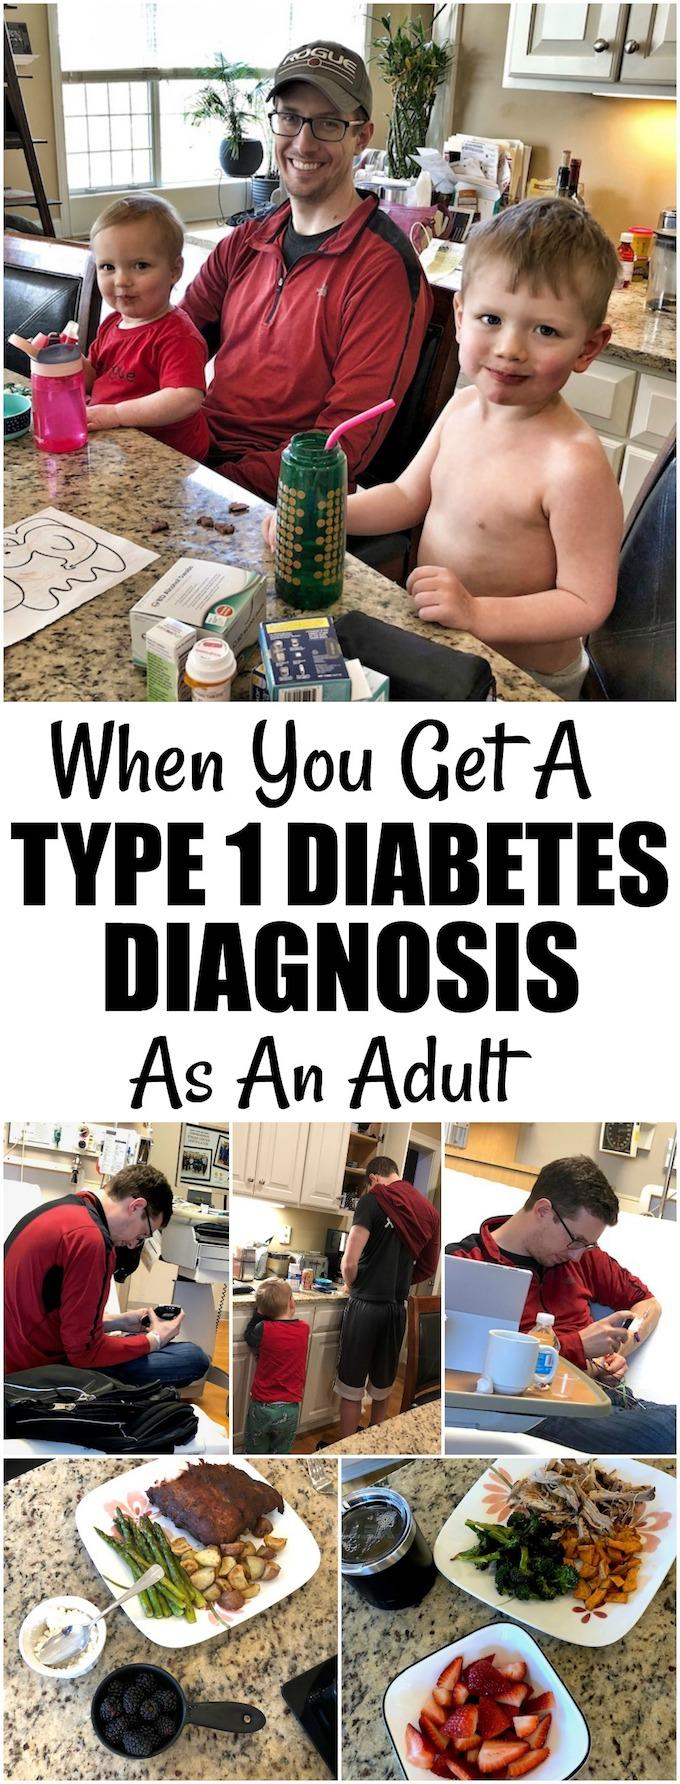 Yes, you can get Type 1 diabetes as an adult. My husband's diagnosis at age 33 had a huge effect on our family, but with a positive attitude and a lot of trial and error, you can find your new normal and live life to the fullest!